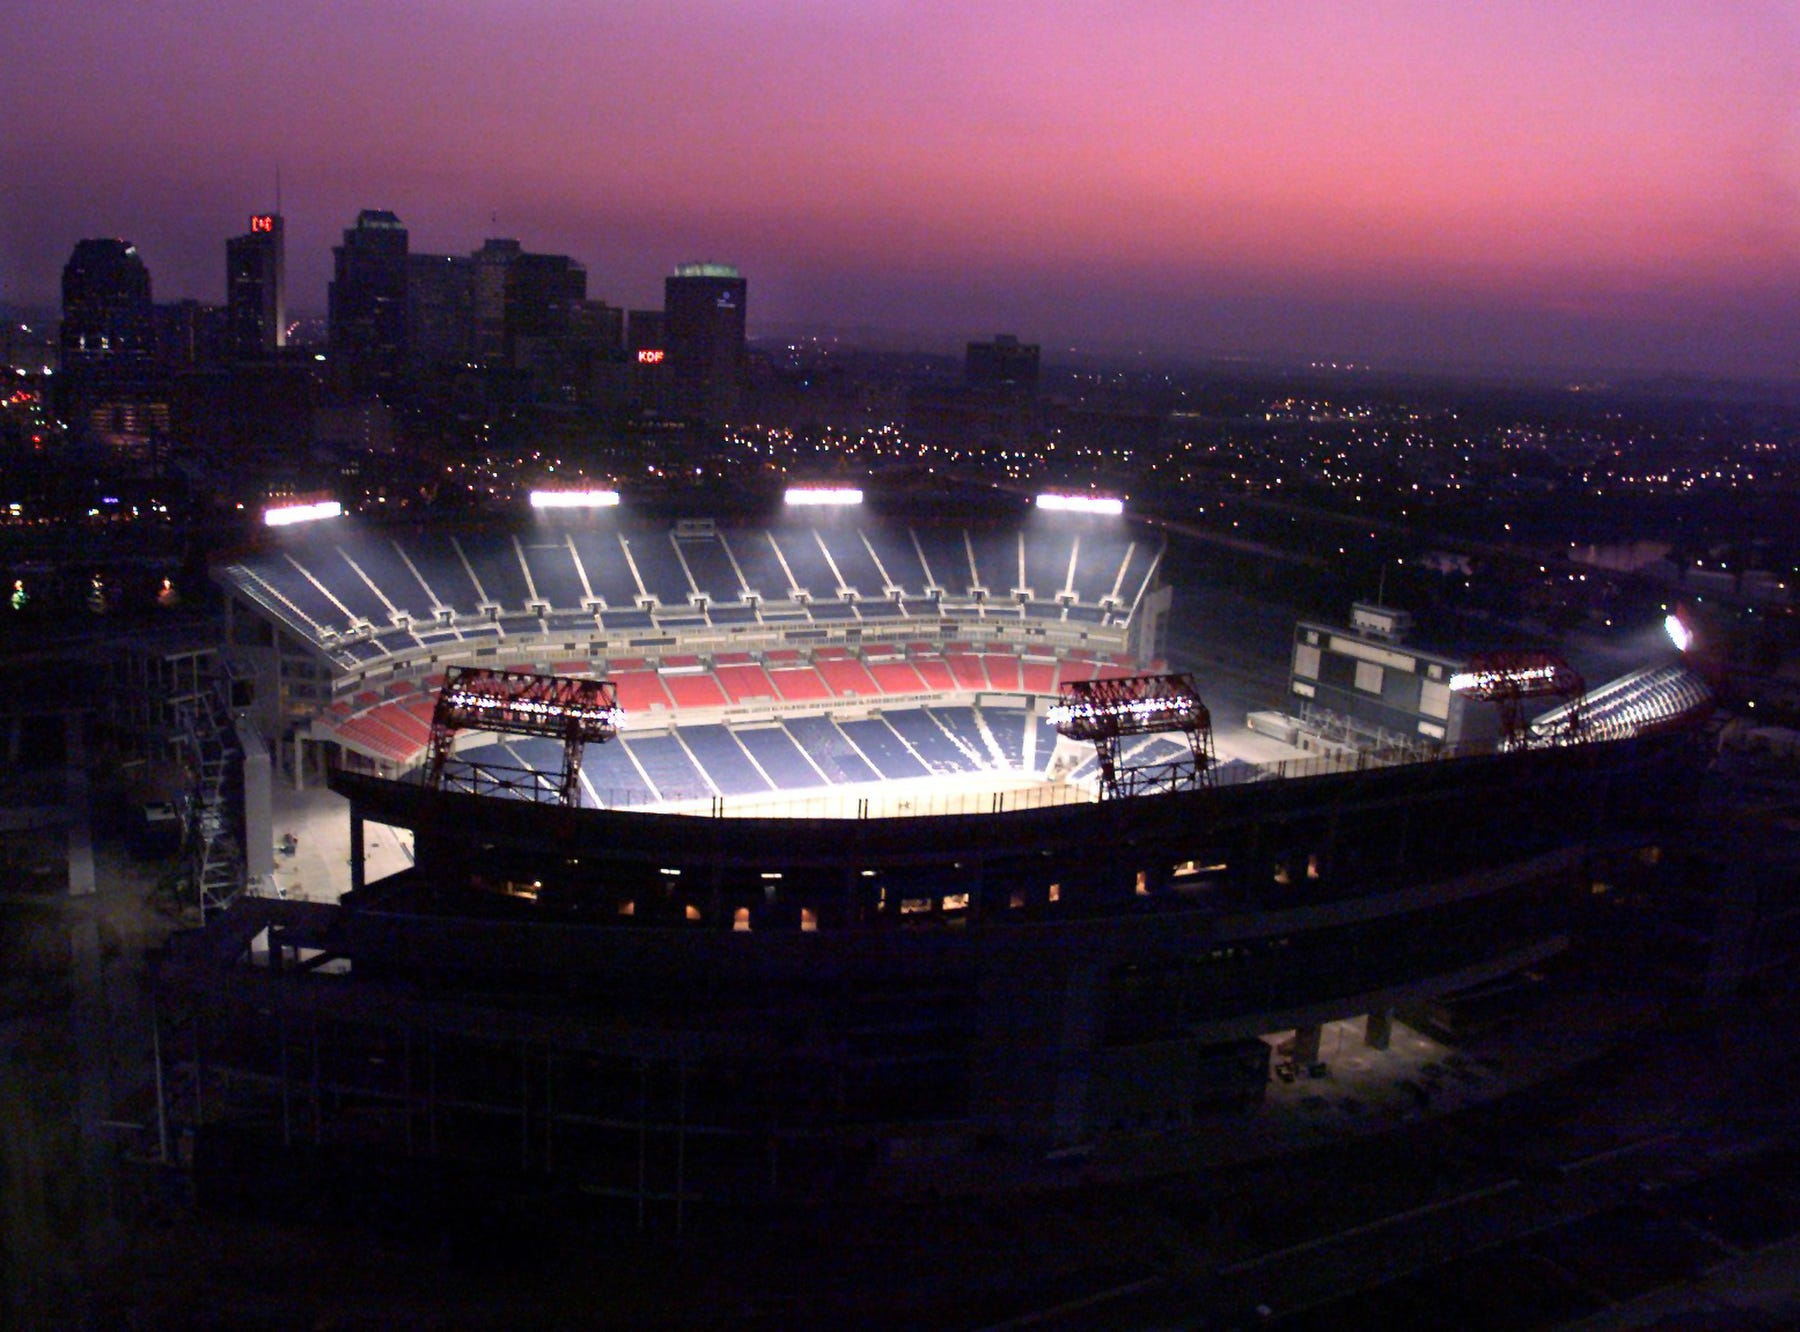 The new stadium lights burn for 100 hours for the first time in Nashville May 14, 1999.